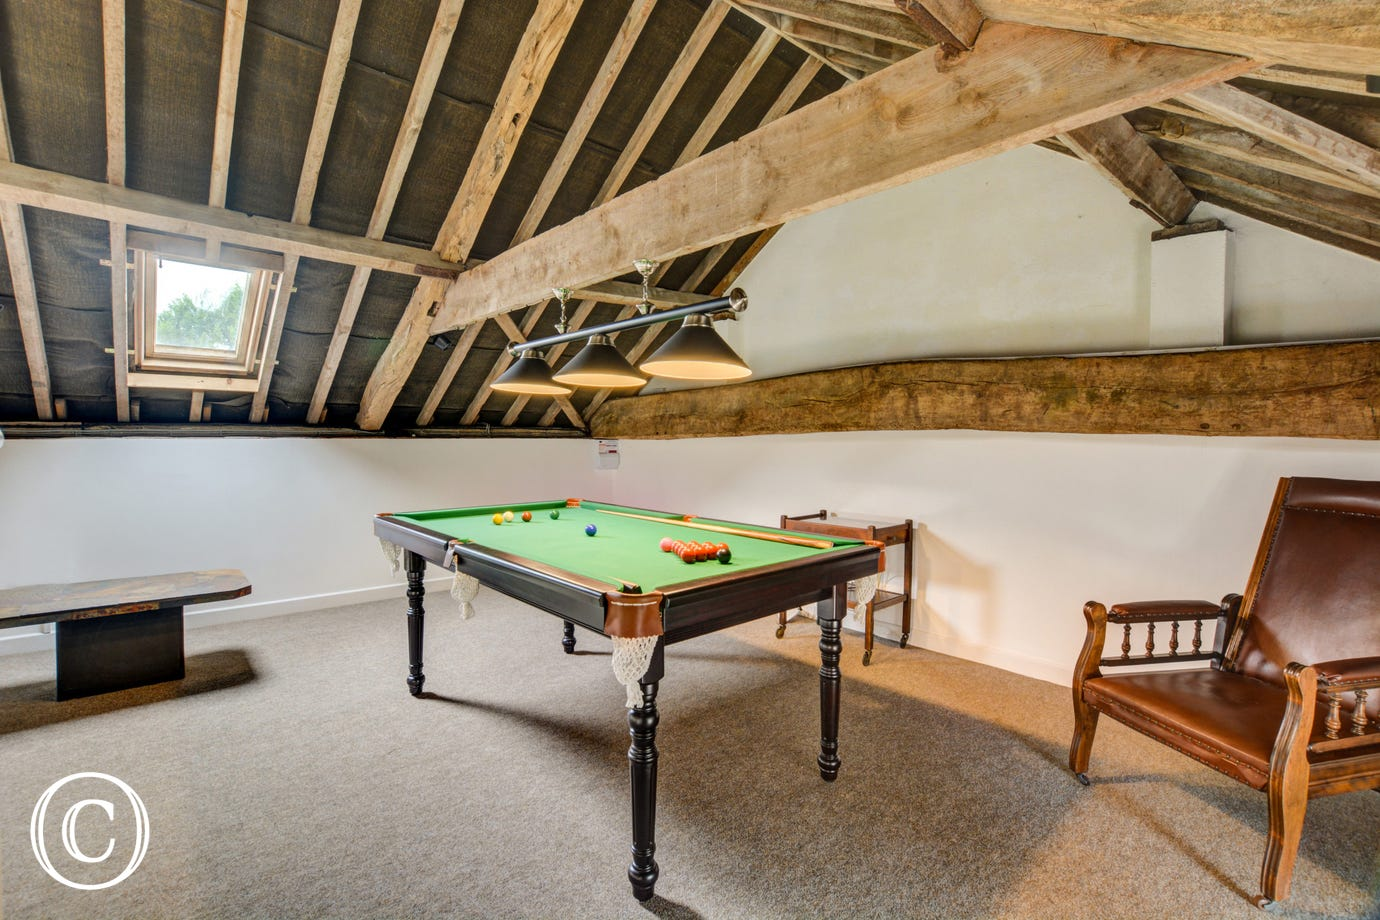 Games Room showing snooker table